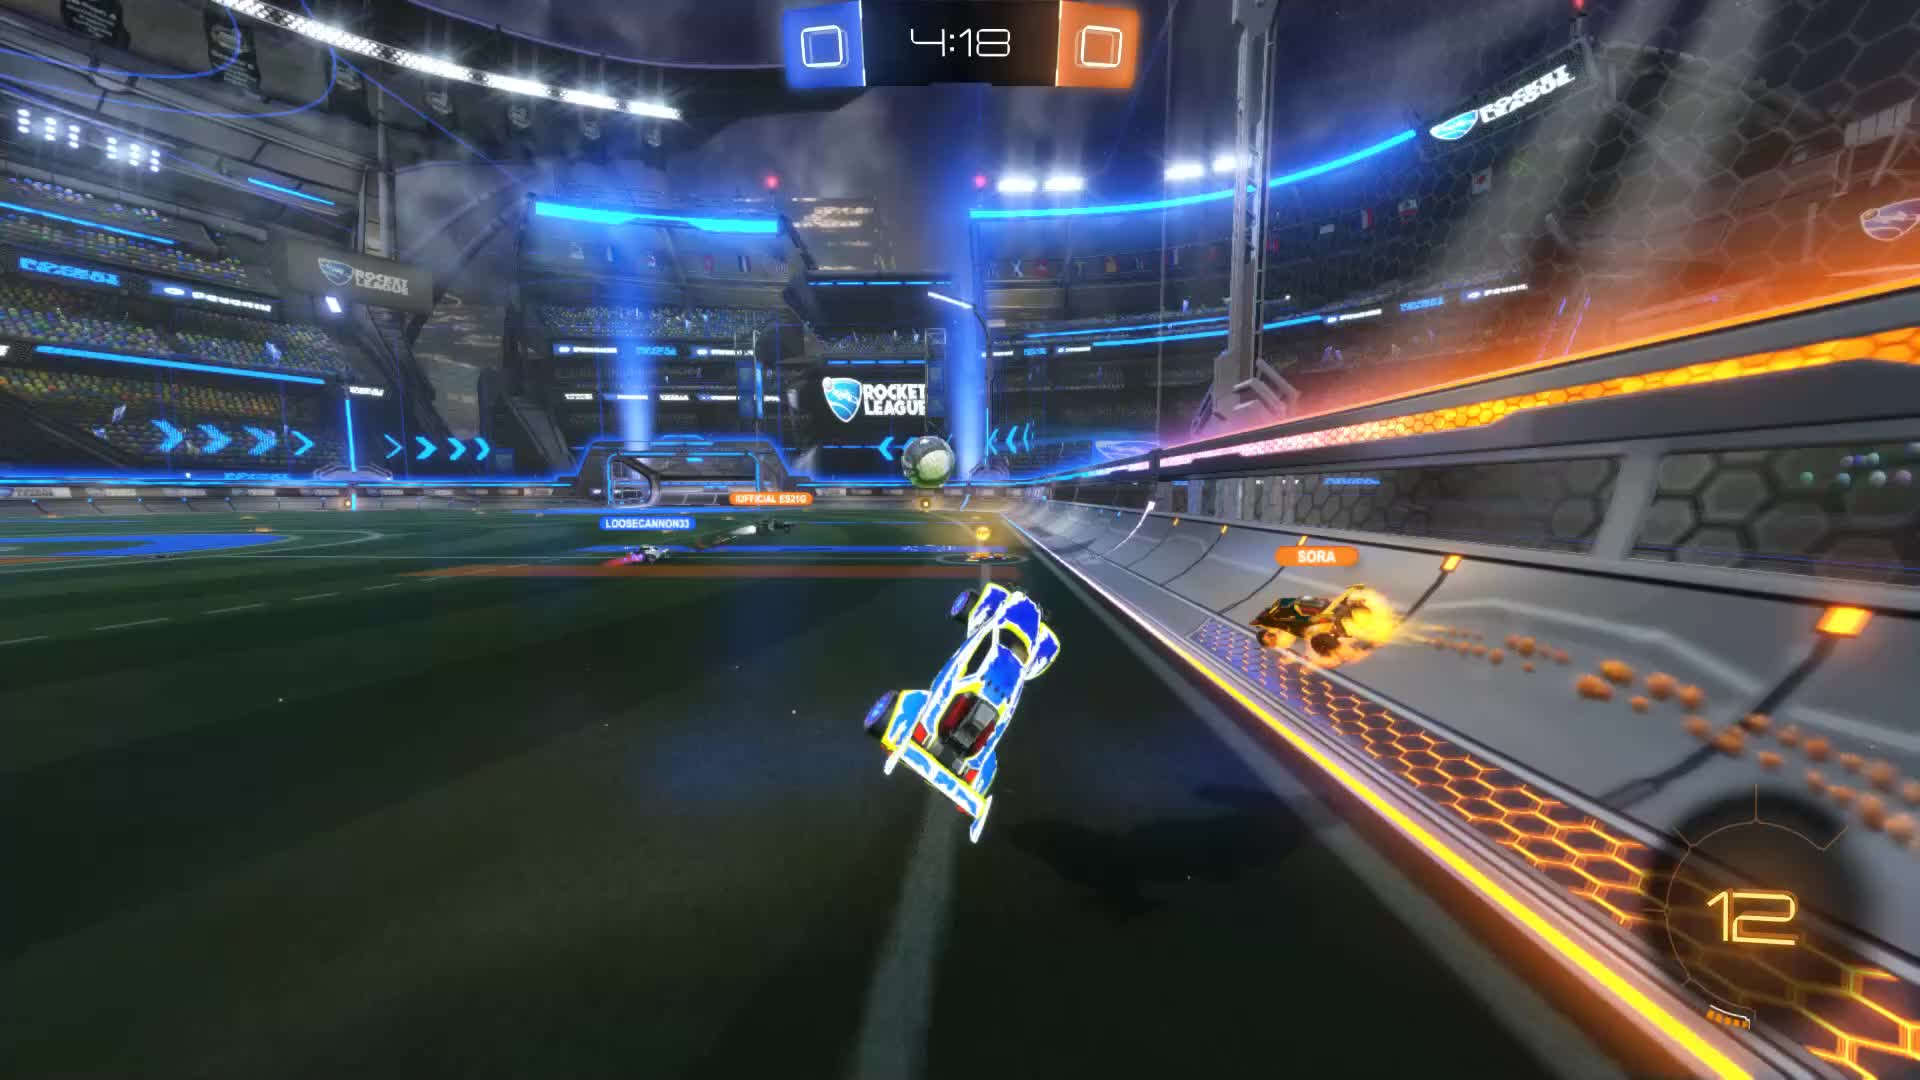 Gif Your Game, GifYourGame, Goal, Rocket League, RocketLeague, XxXxXxXxXxXxXxXxXxX, Goal 1: XxXxXxXxXxXxXxXxXxX GIFs